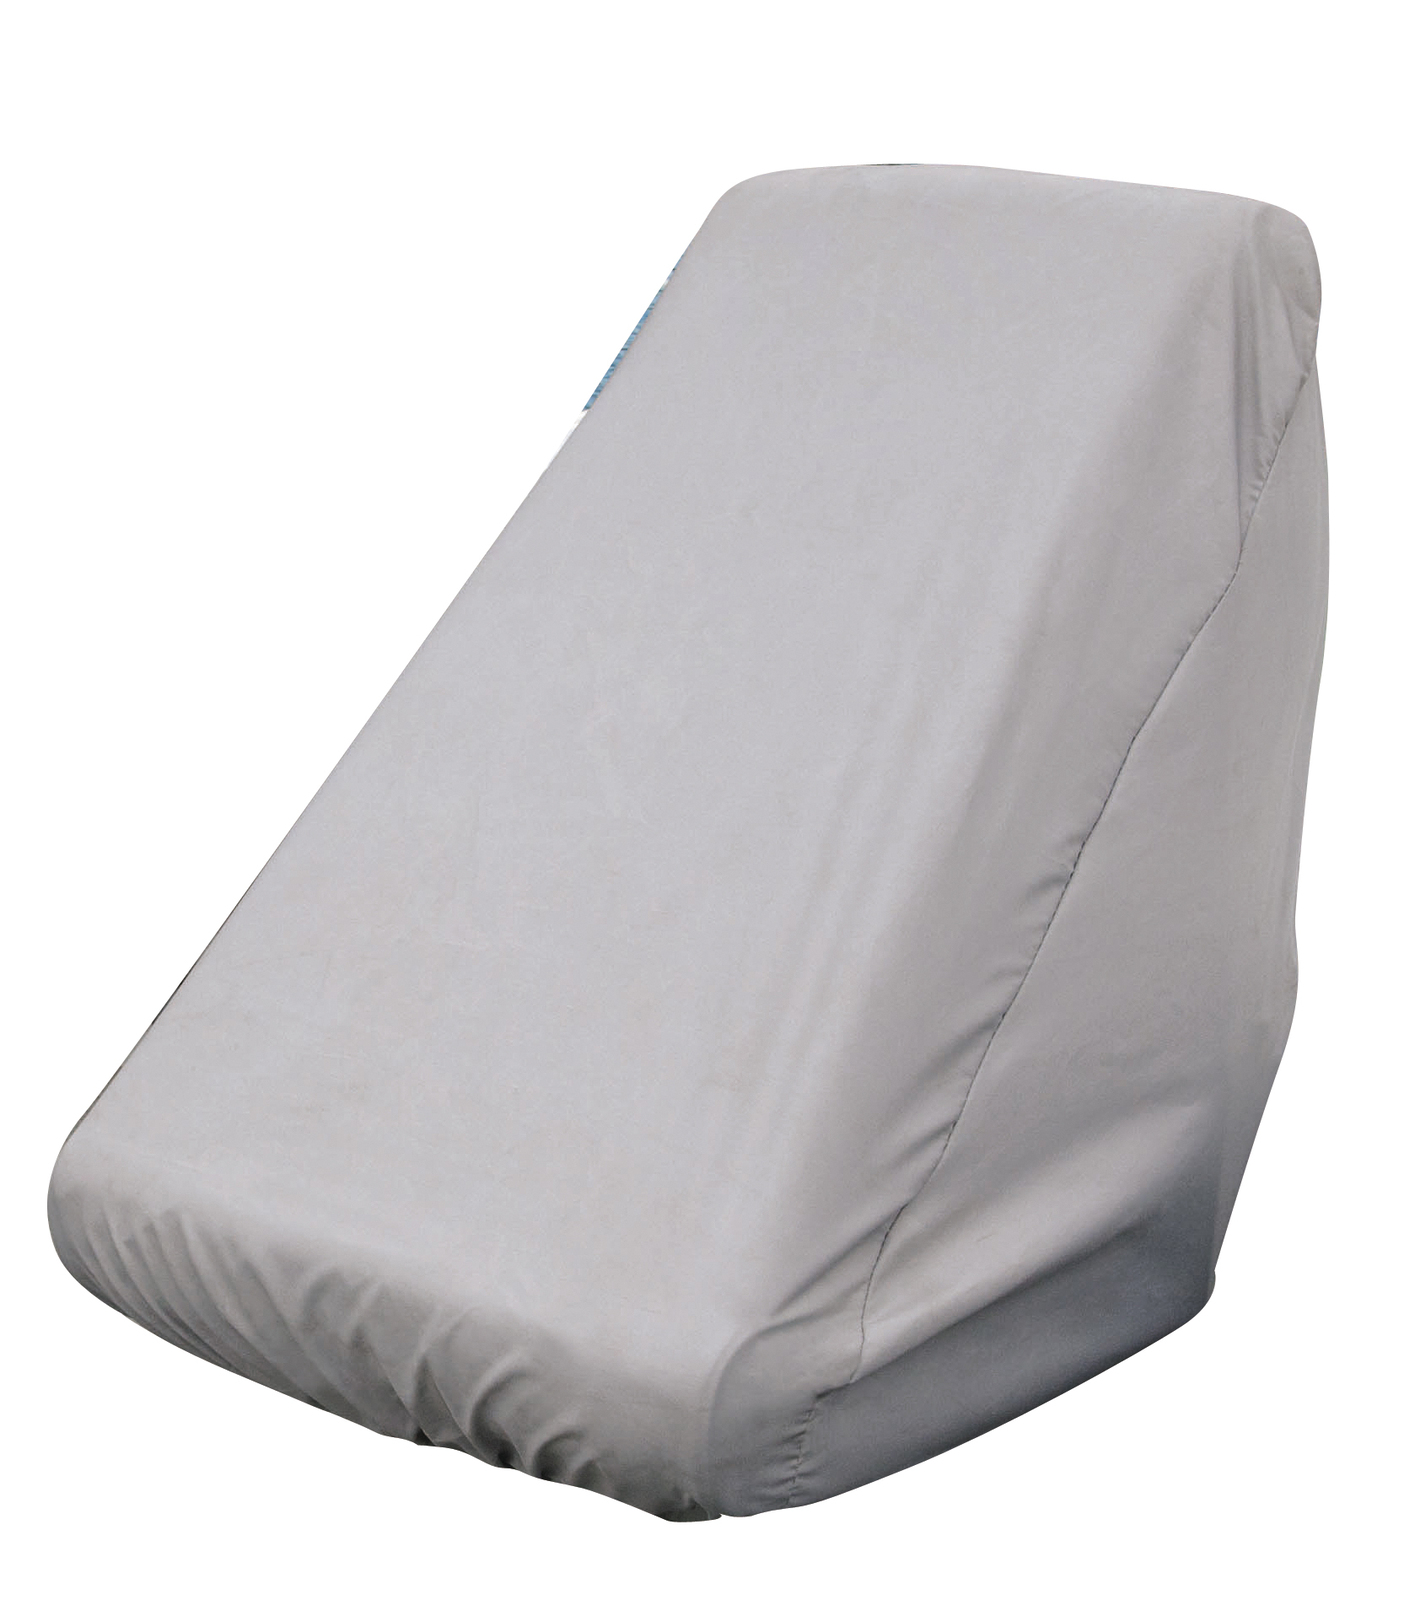 Boat Seat Cover Large Suitable For Fixed Or Folding Seats Oceansouth